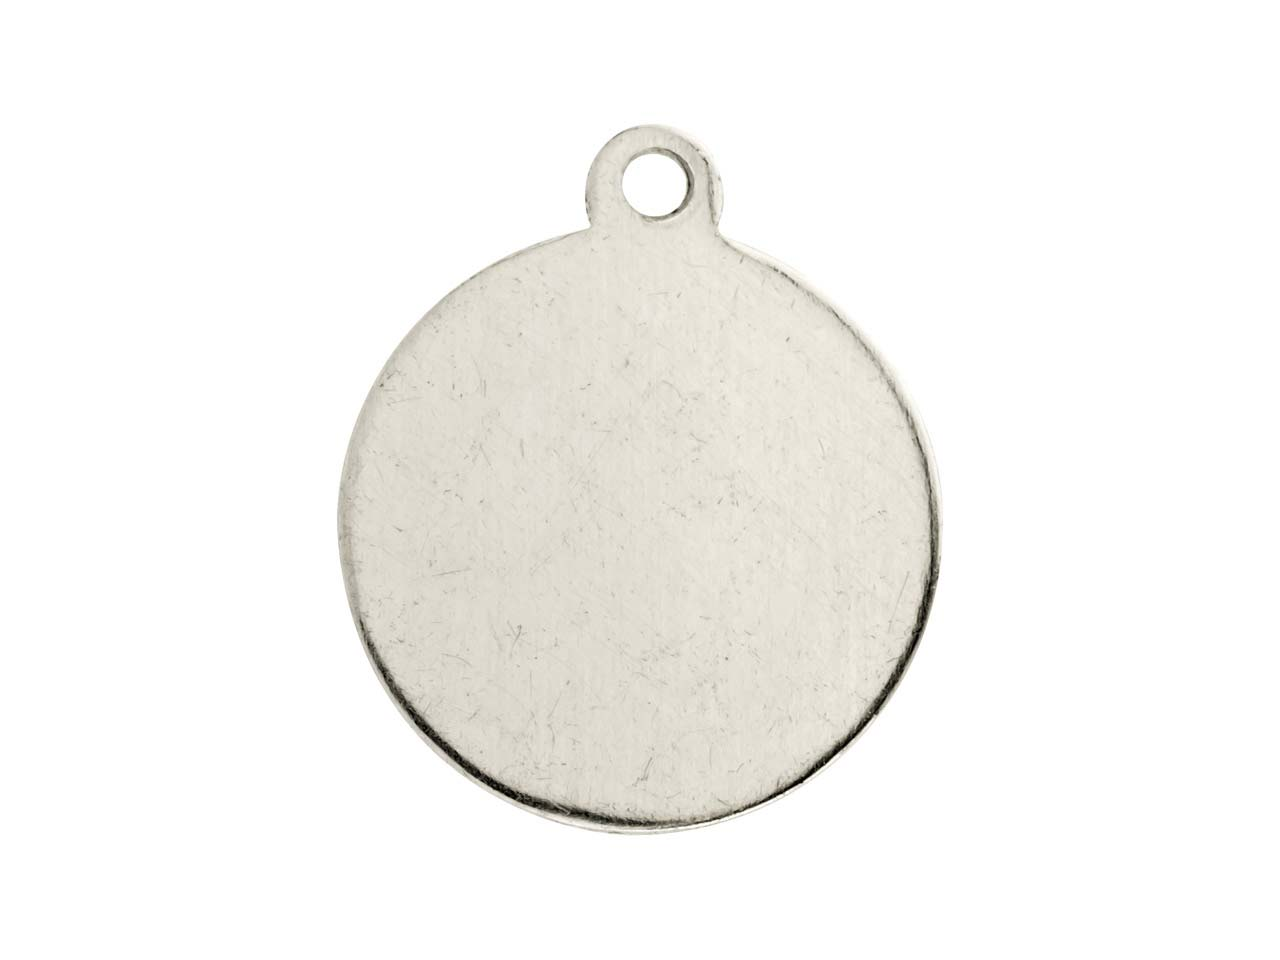 Impressart Aluminium Blanks Round  Tag 16mm X 0.8mm, Pack of 20